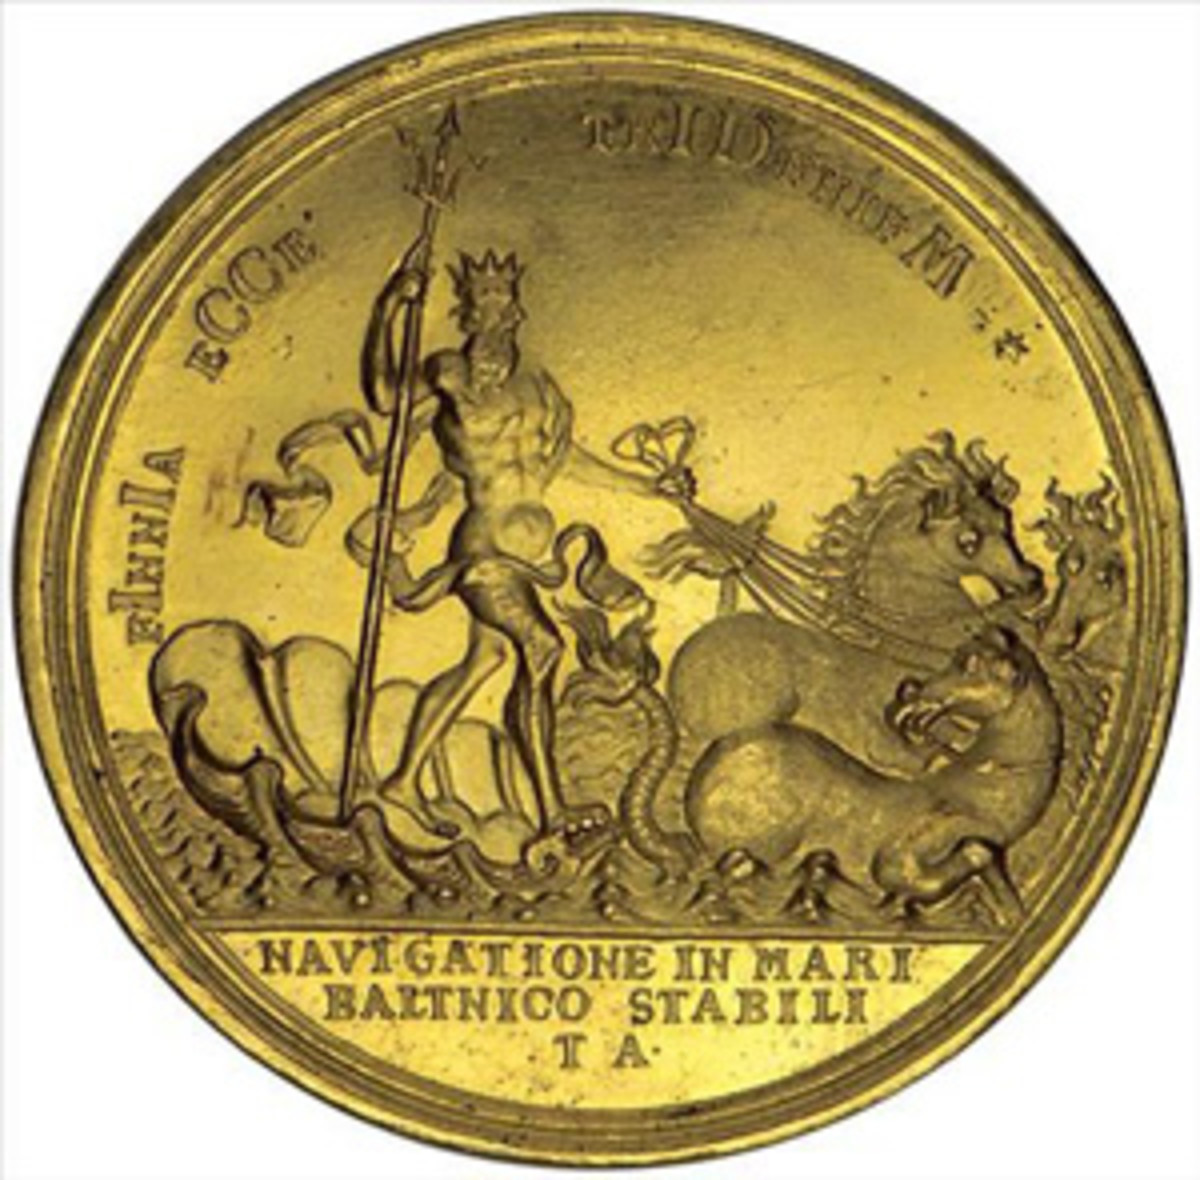 Peter the Great medal with chronogram date of MDCCIII = 1703. (Image courtesy Stack's Bowers)